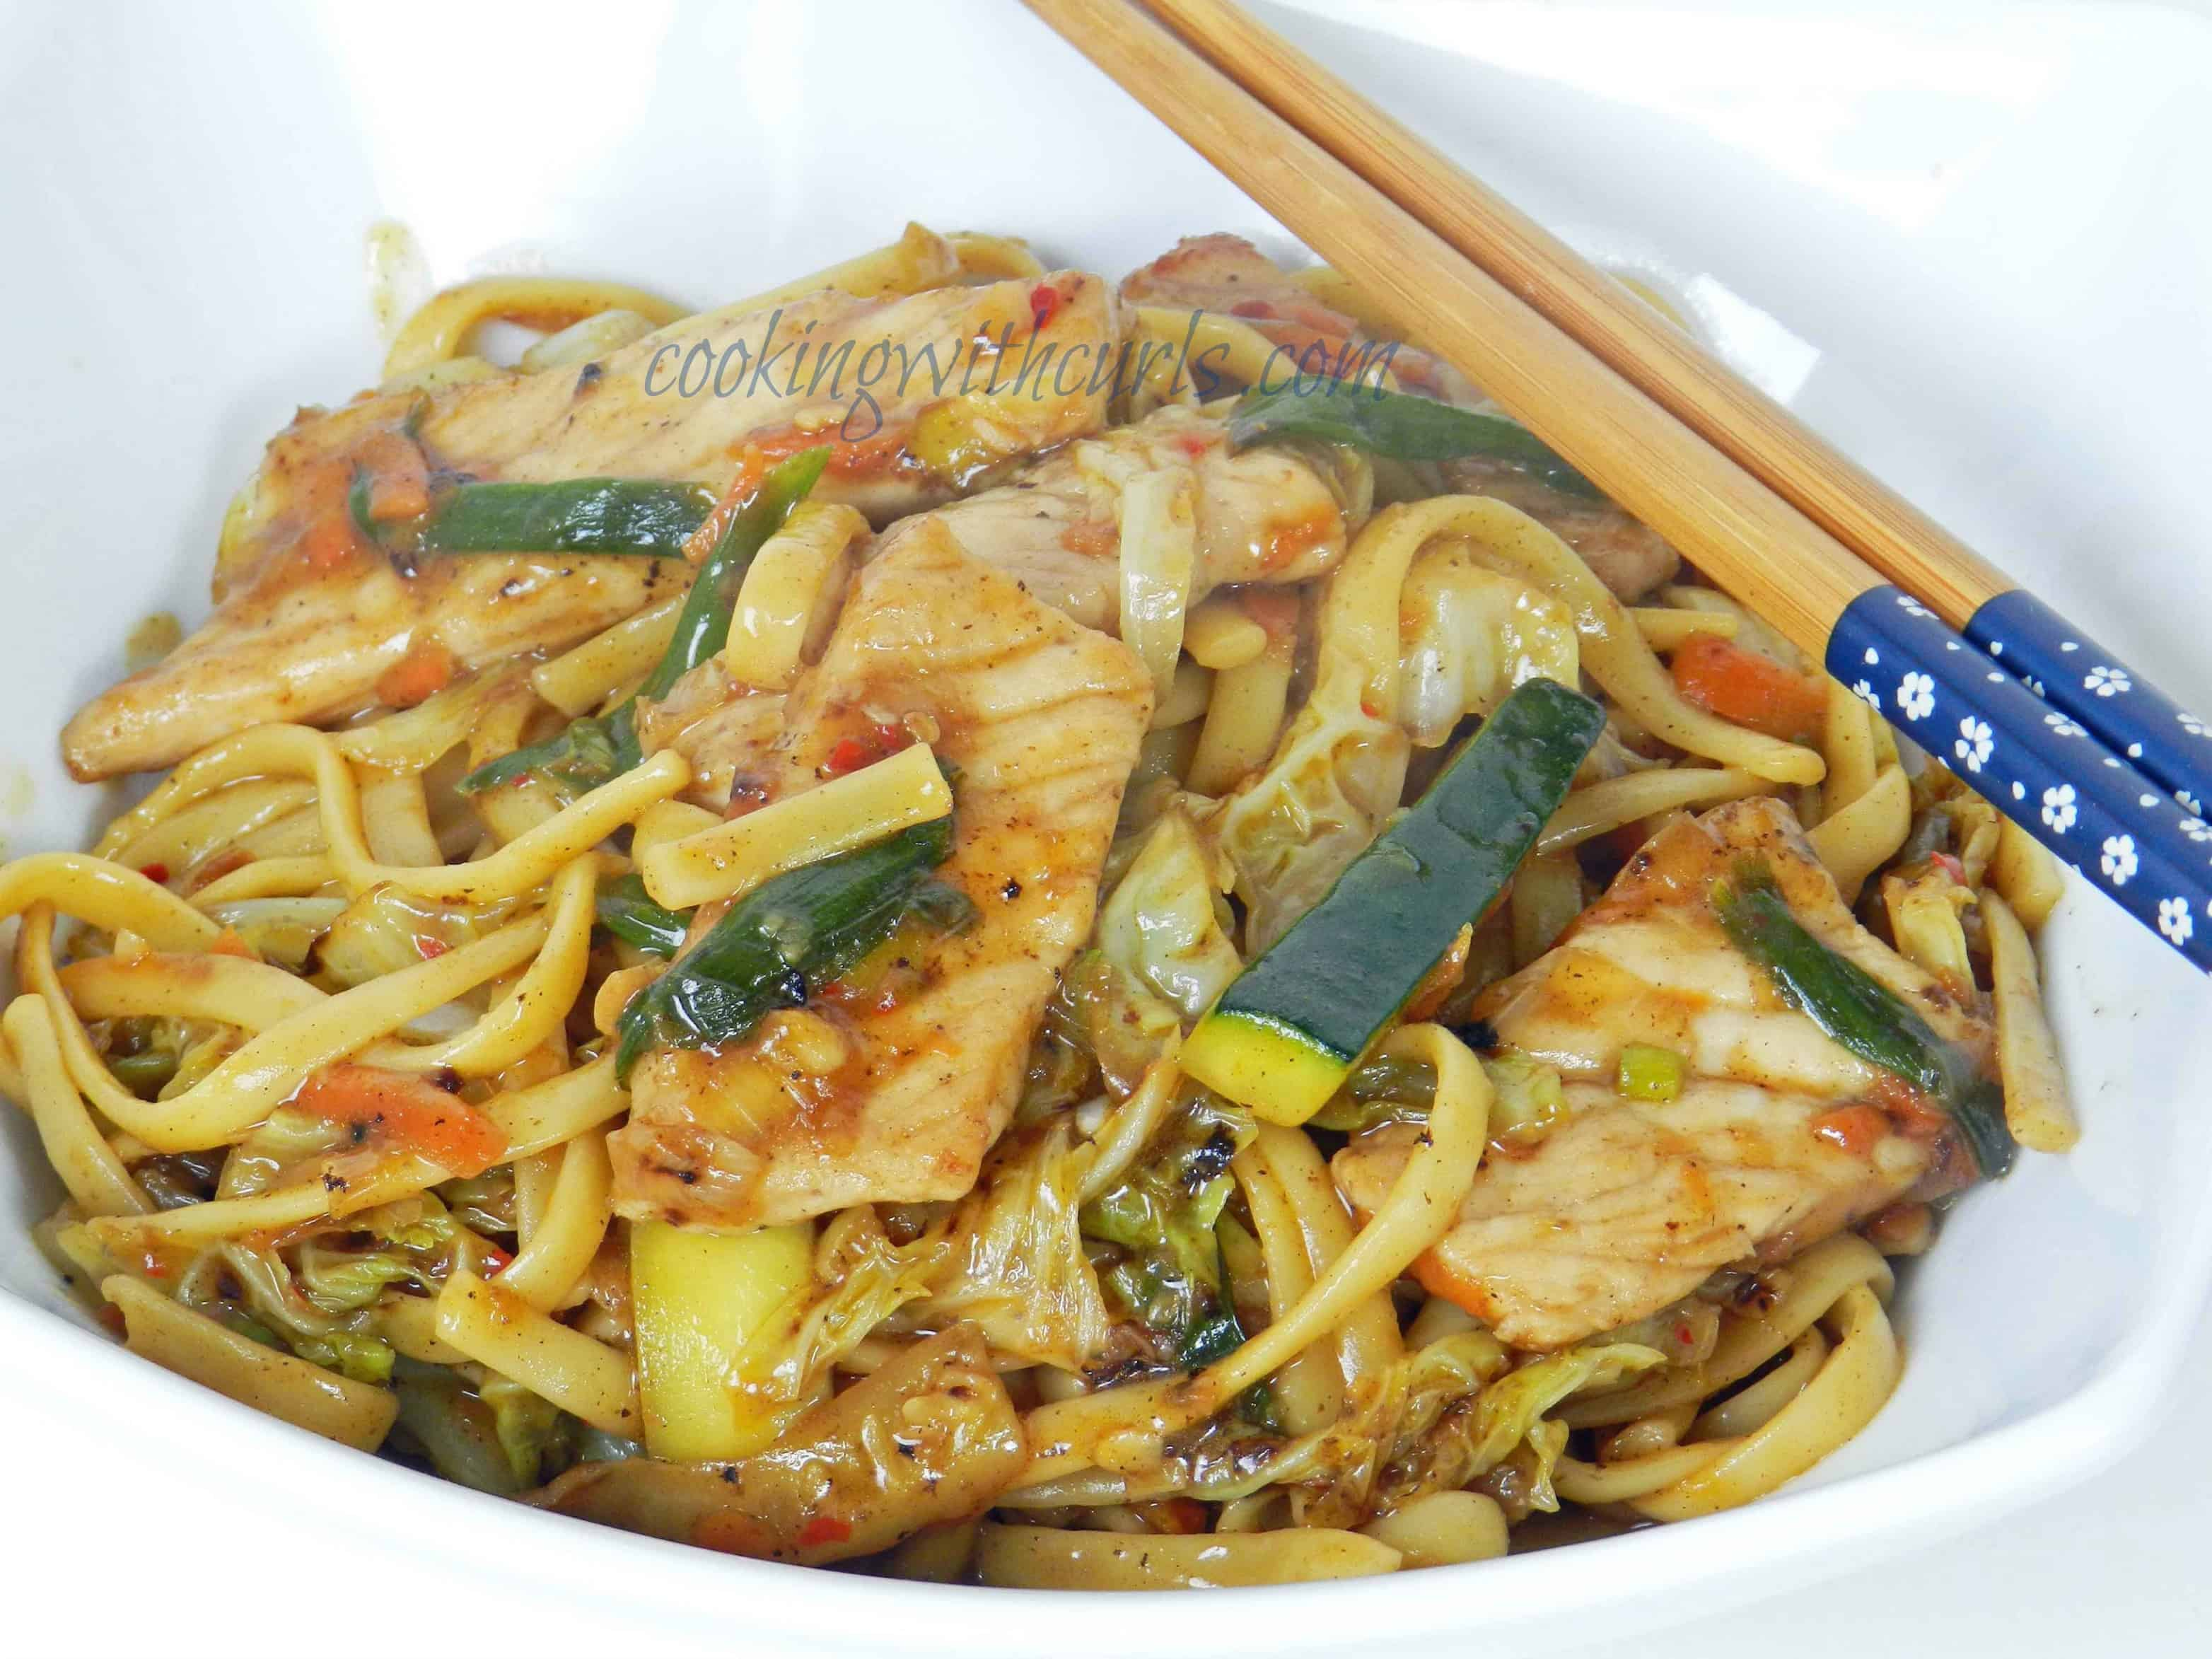 Pork Lo Mein by cookingwithcurls.com